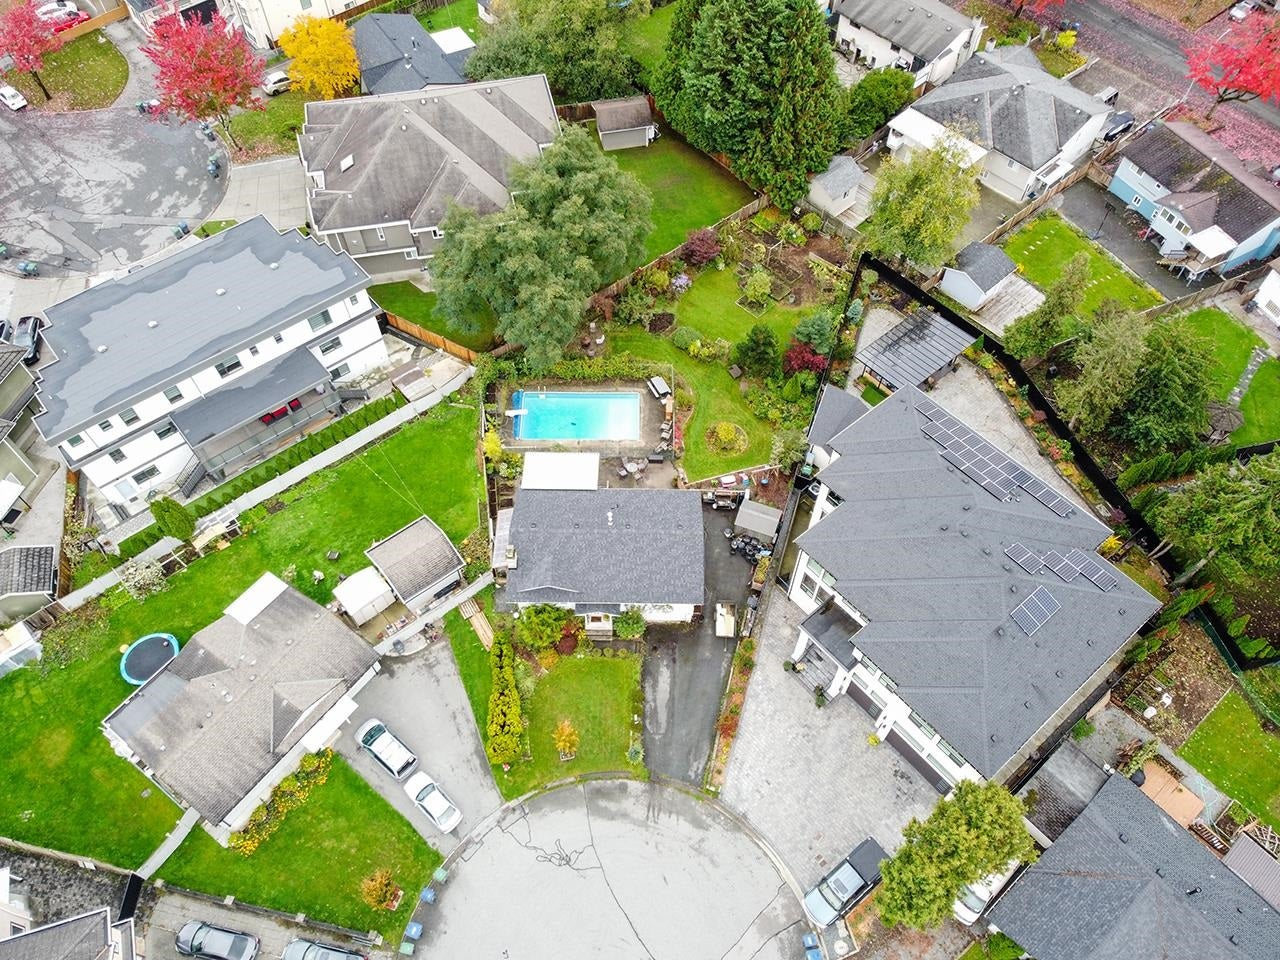 13388 CYPRESS PLACE - Queen Mary Park Surrey House/Single Family for sale, 4 Bedrooms (R2624139) - #37